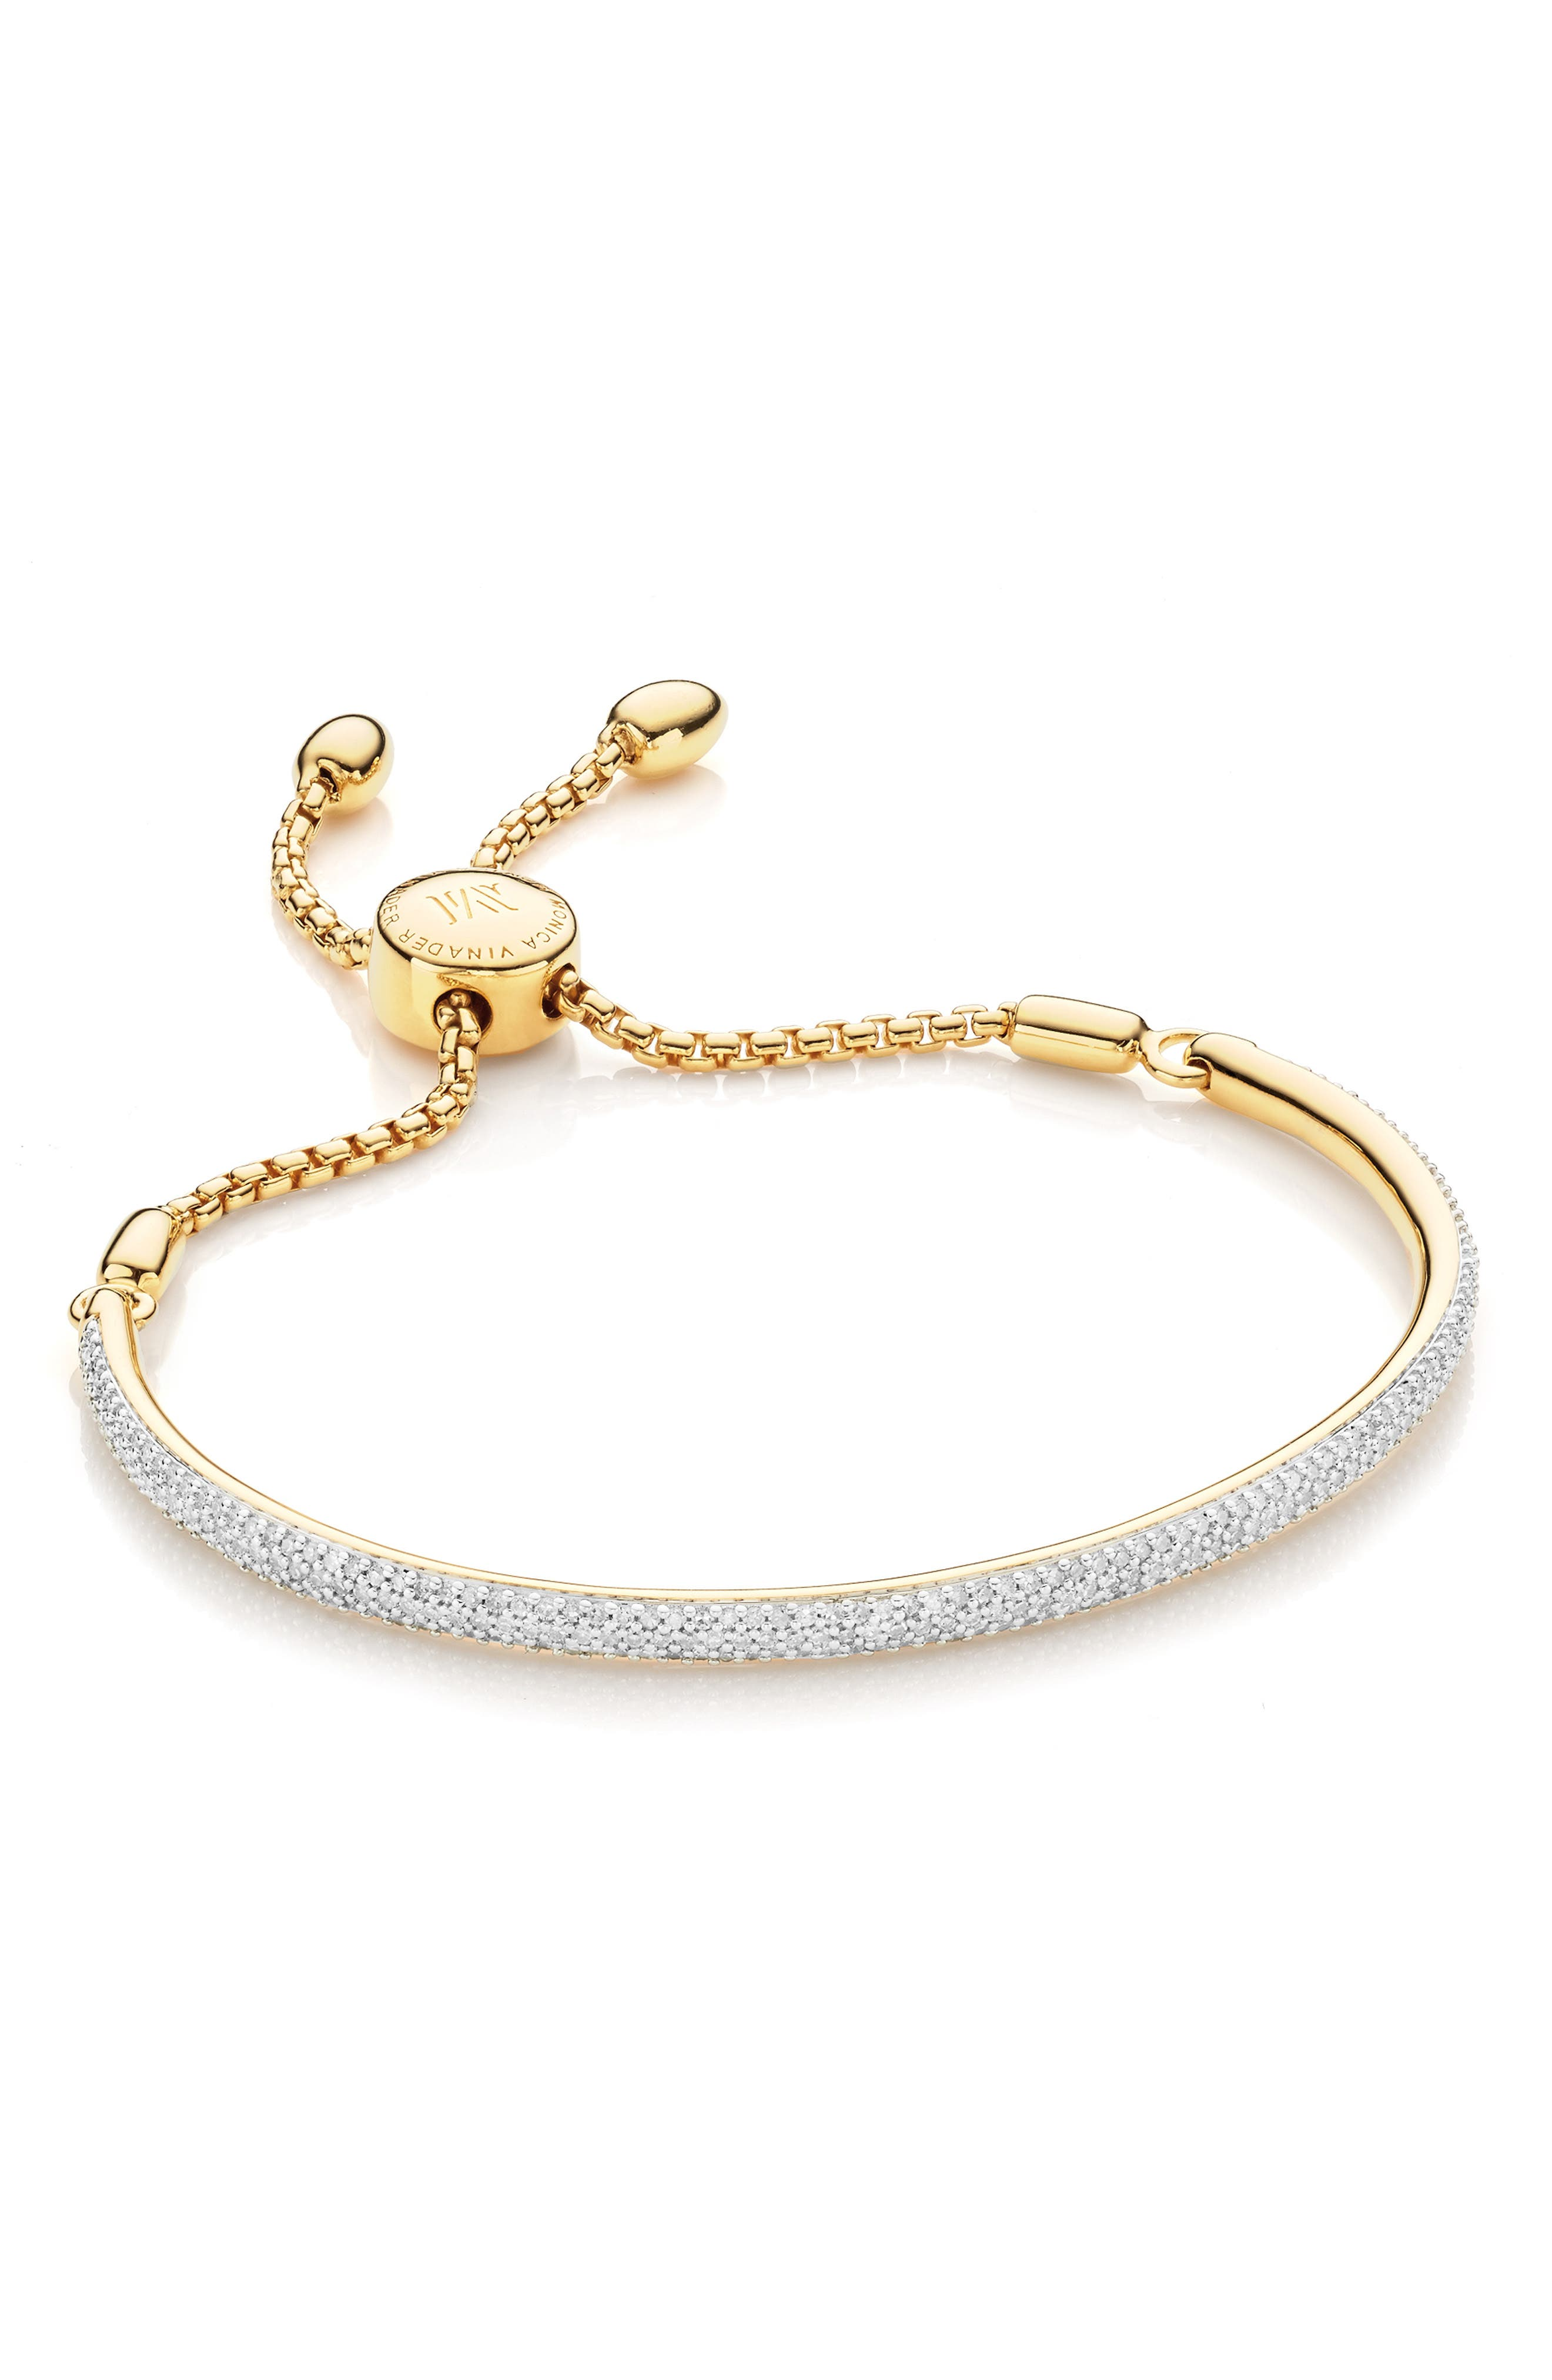 Fiji Diamond Pavé Toggle Petite Bracelet,                             Main thumbnail 1, color,                             YELLOW GOLD